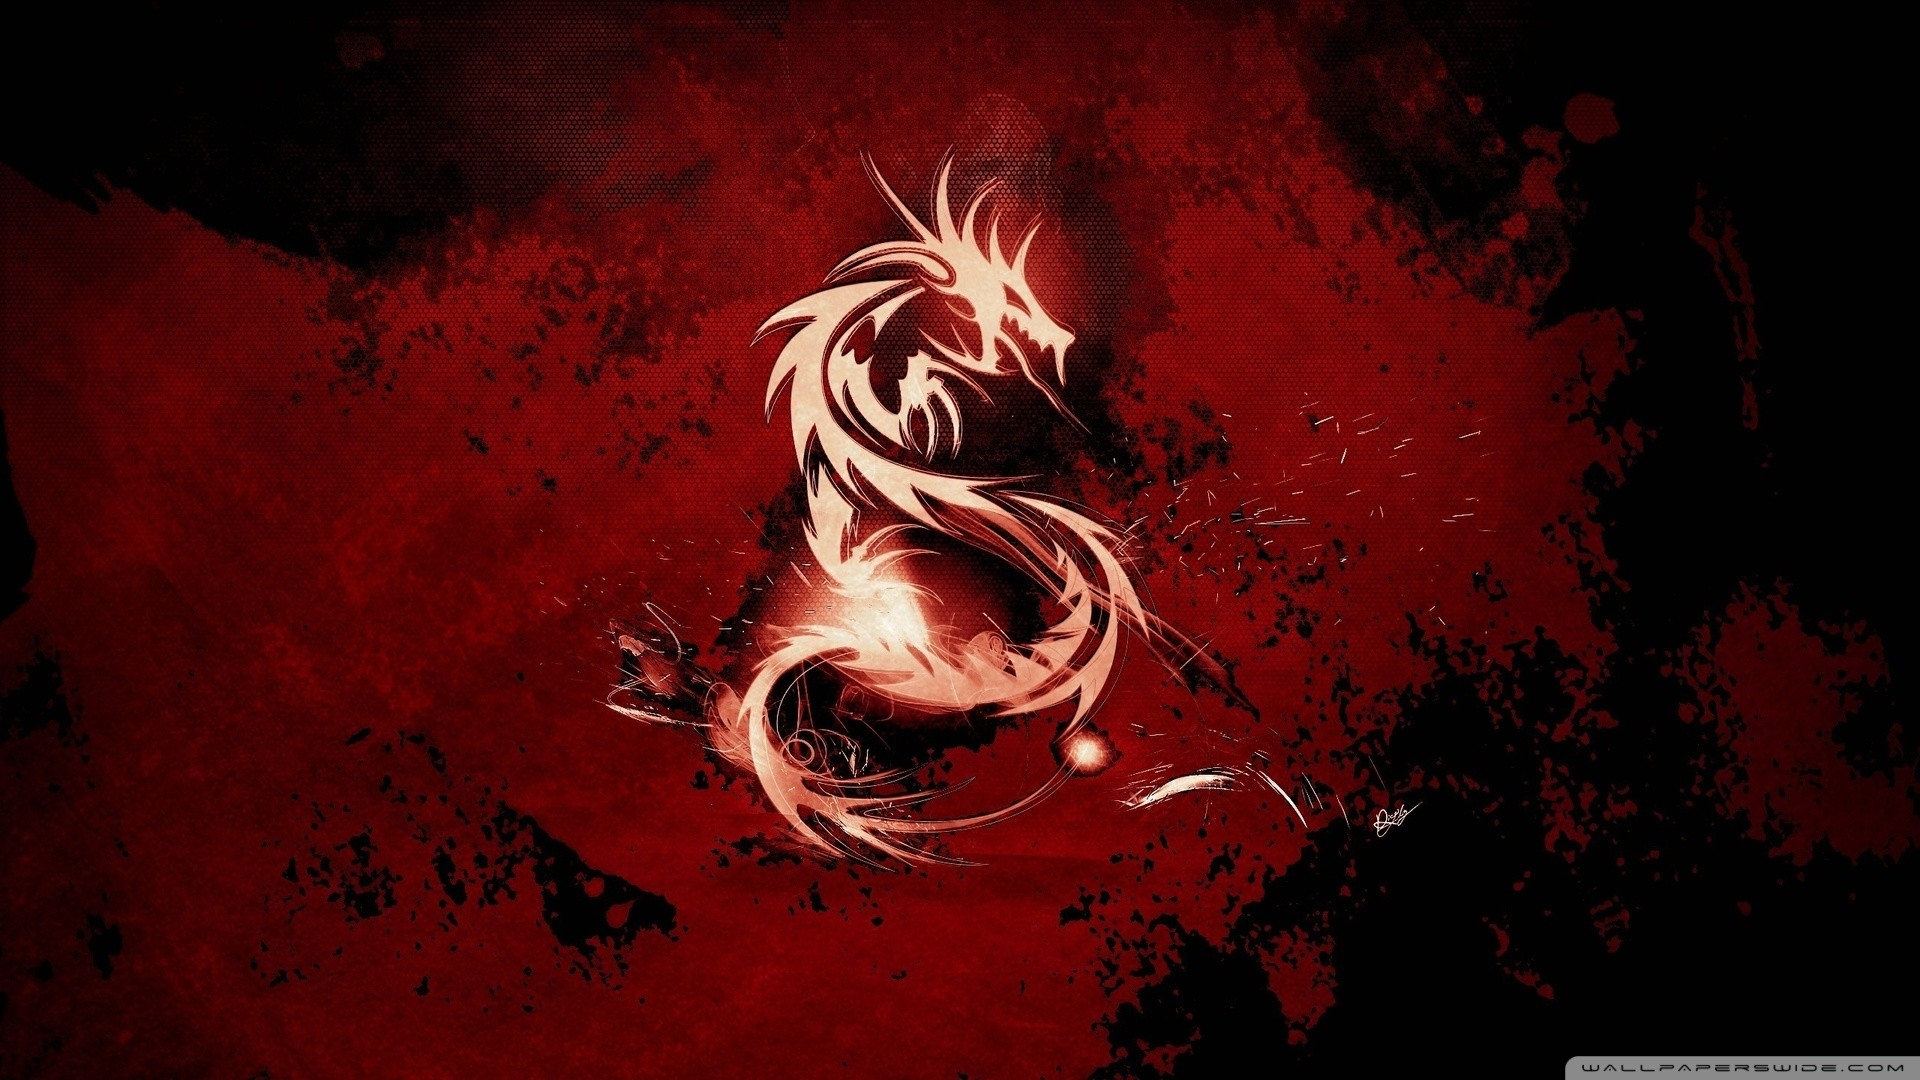 Red Dragon Wallpaper 66 Pictures